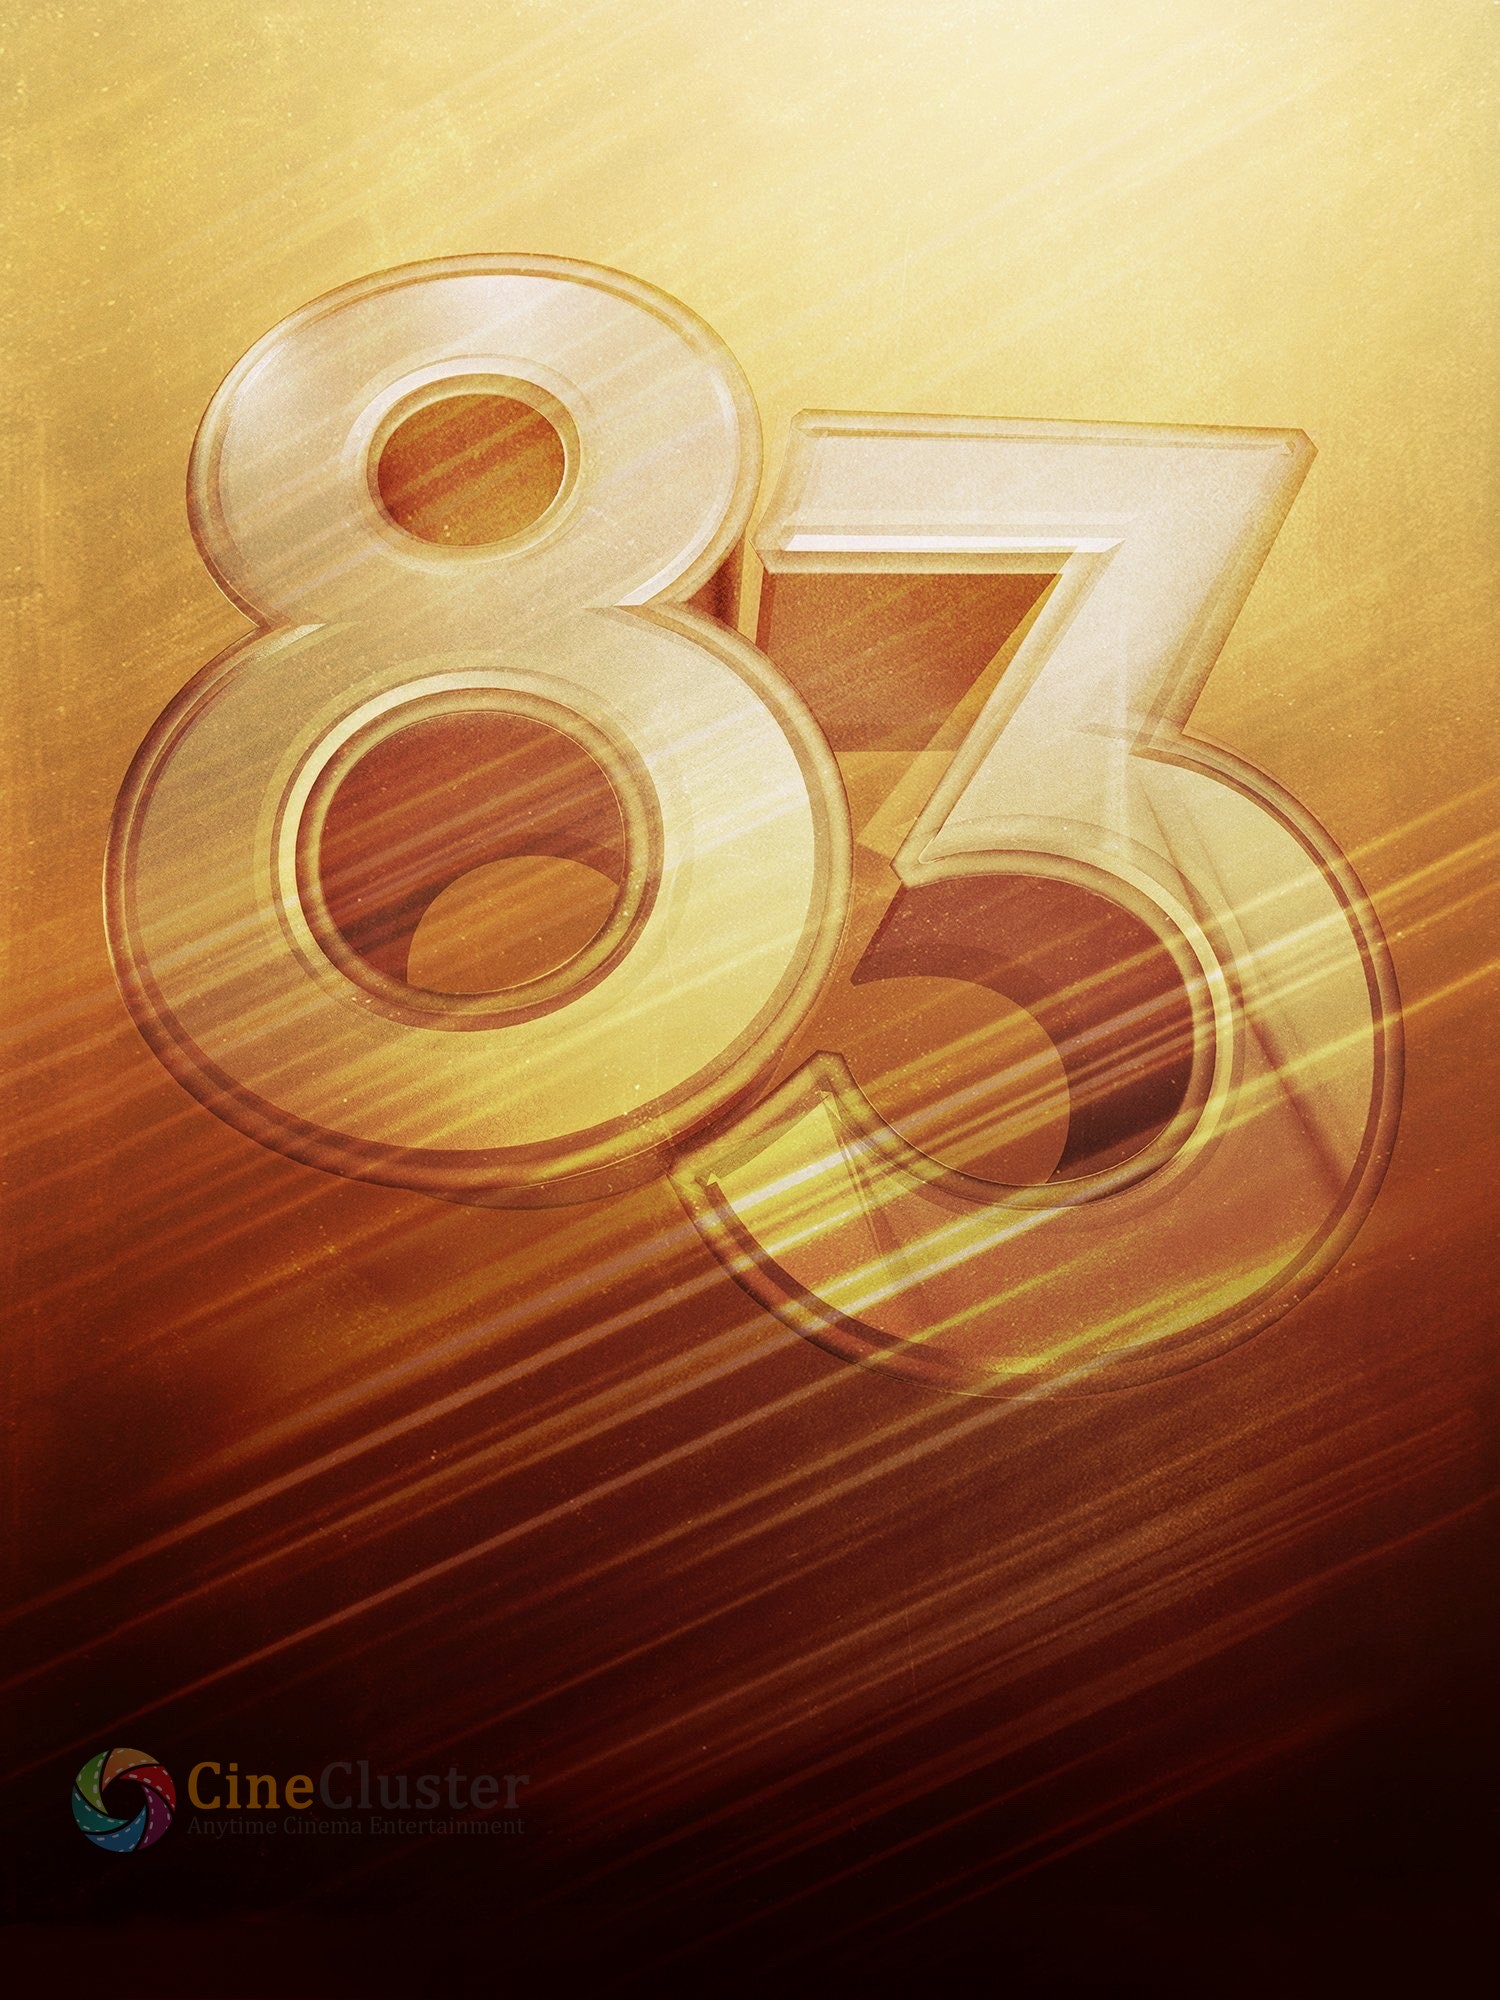 83 Posters